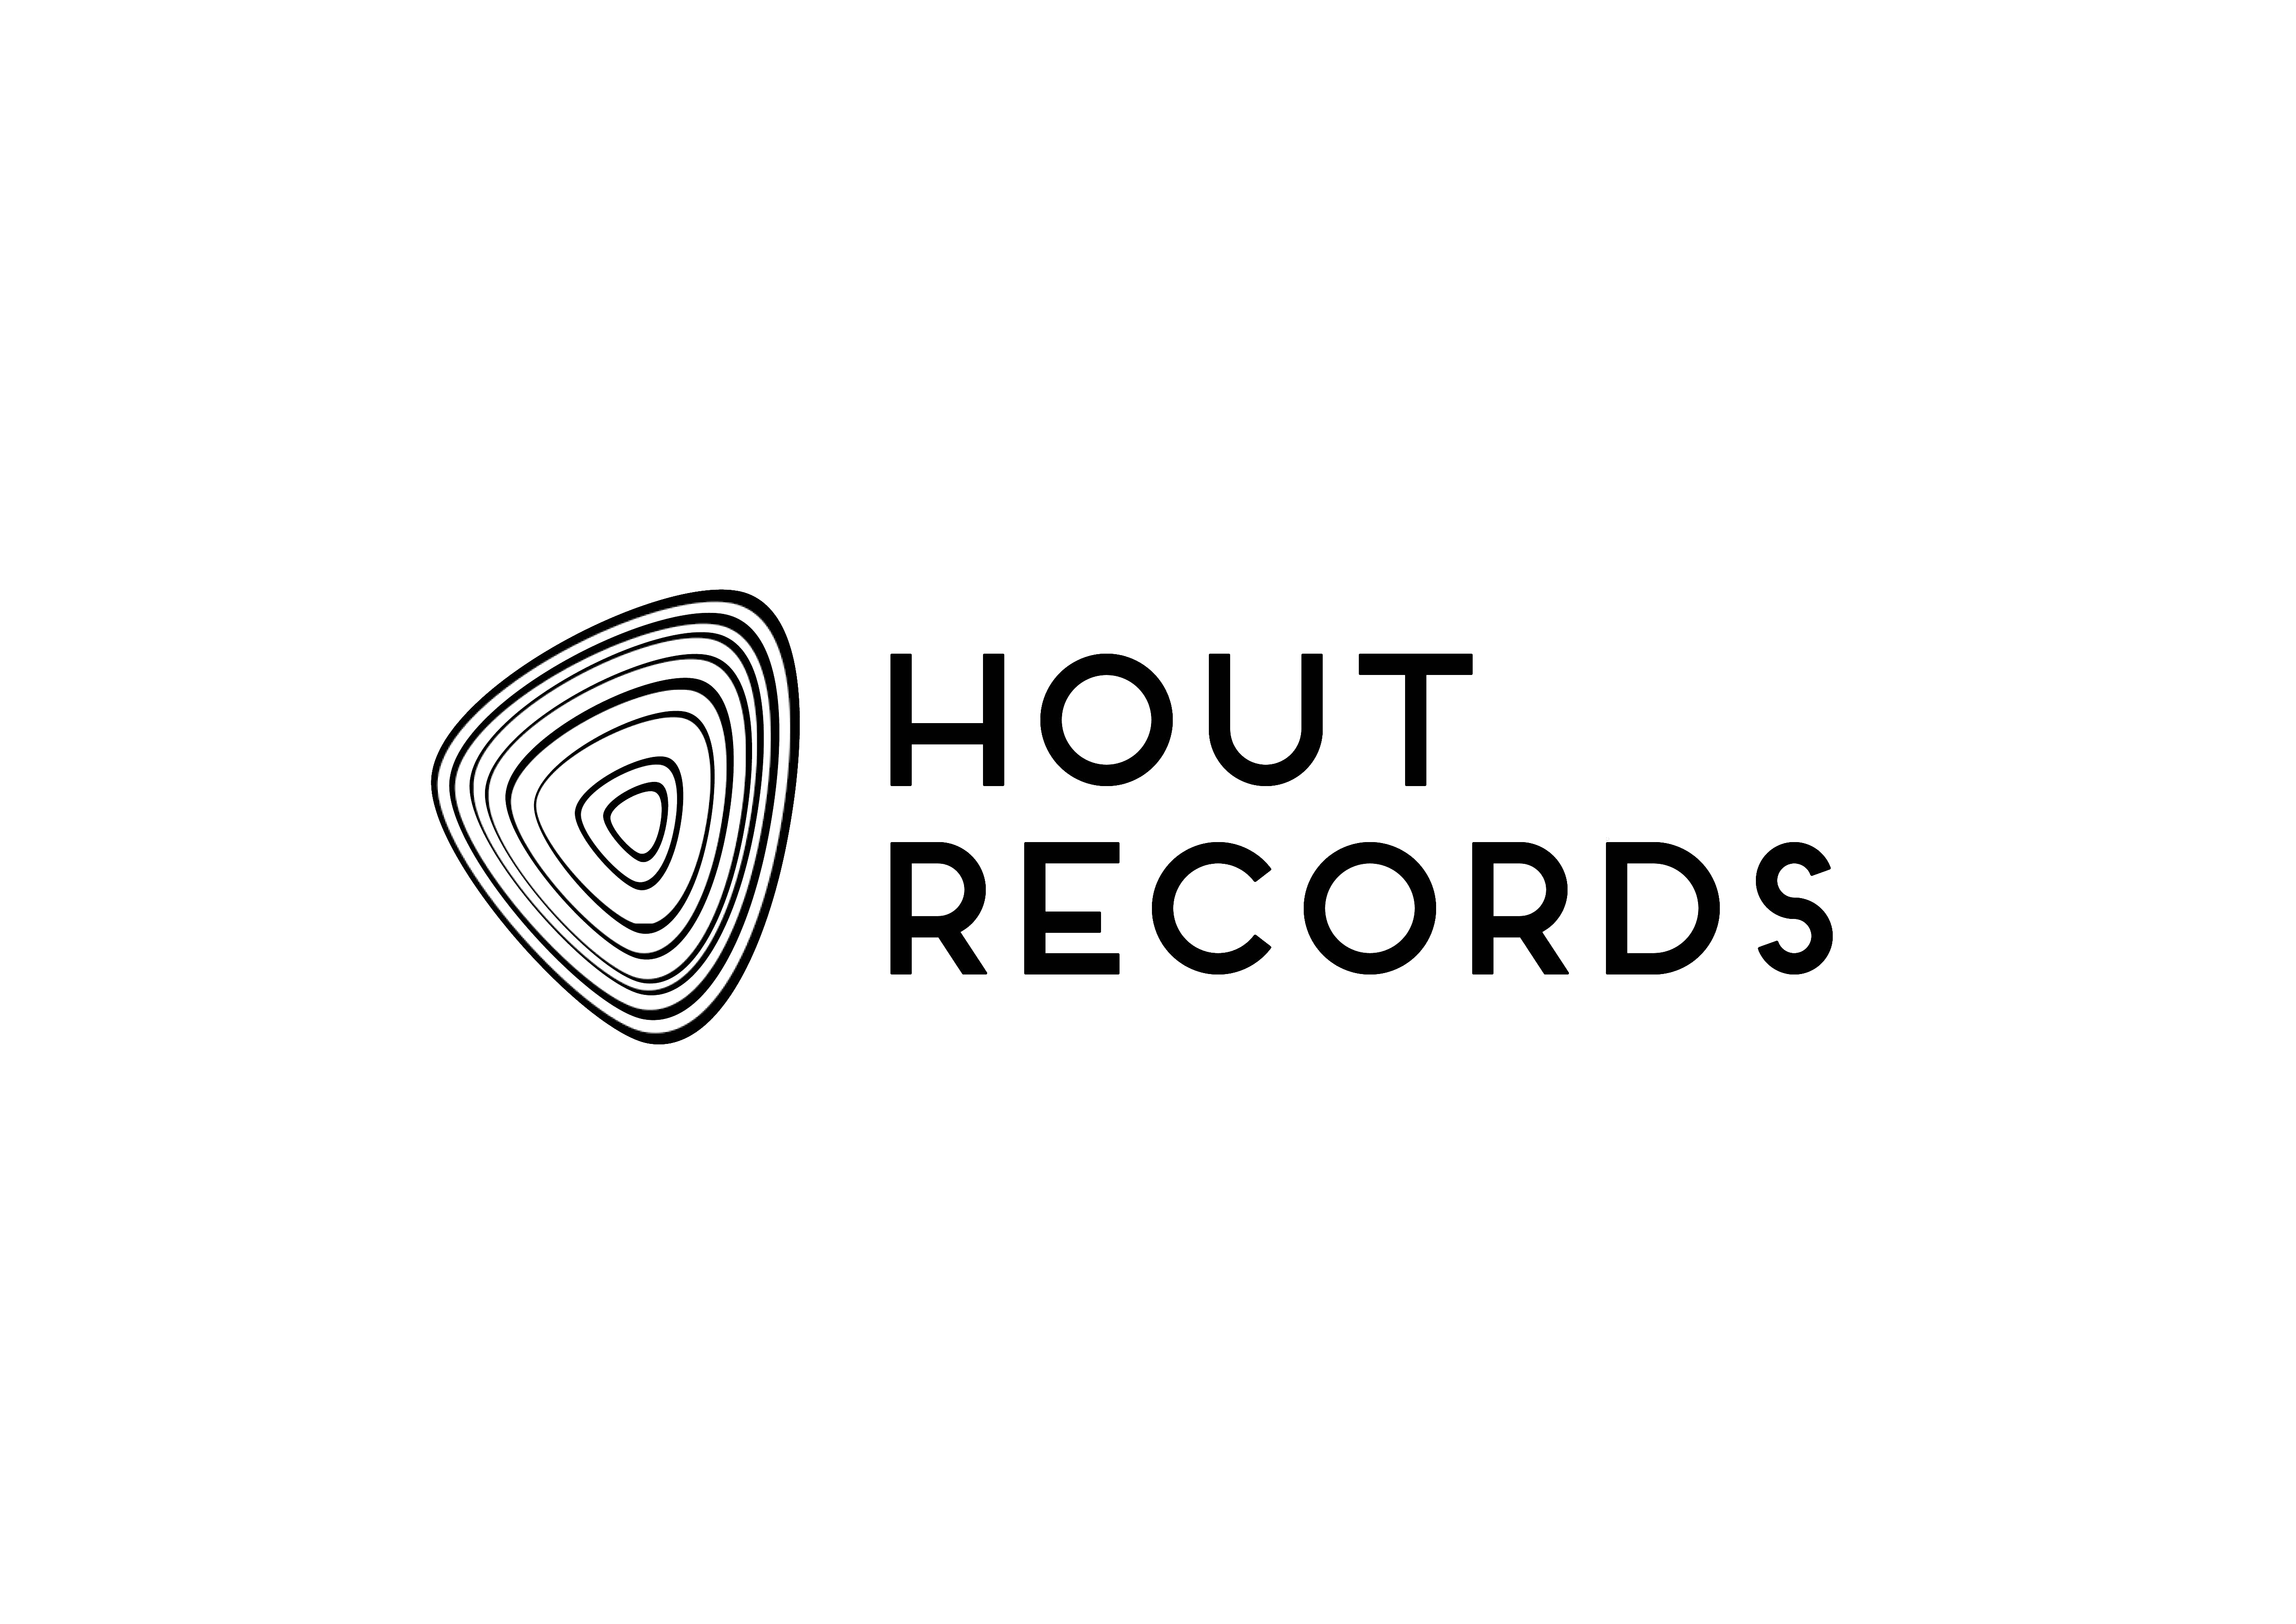 Logo_HoutRecords_transparent